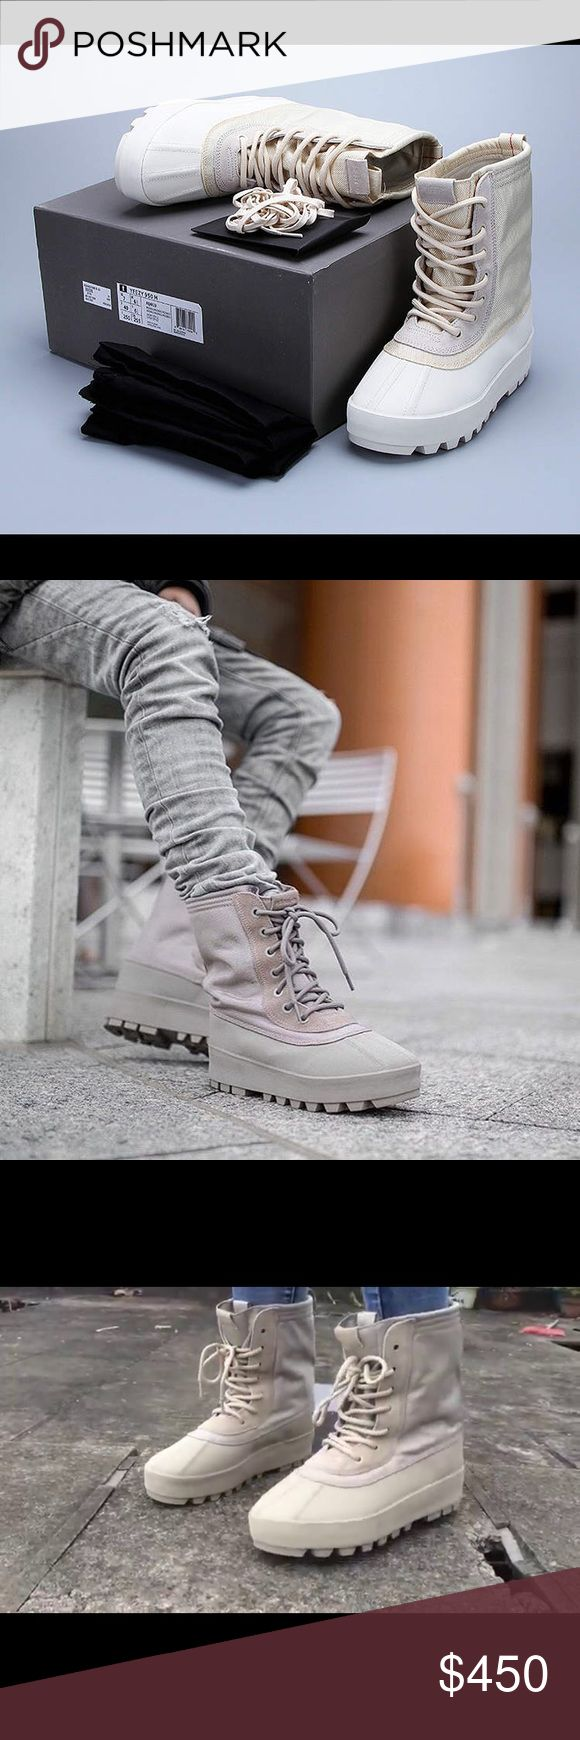 ISO!!! Will buy immediately :) YEEZY 950 Looking for a pair of Yeezy 950's. Been desperate but could never find my size for a great price. Looking for Turtle Dove, Moonrock, or Peyote. Size Women 8.5/9, or Men 7. 😊☺️ P.S. I've once been scammed over thes